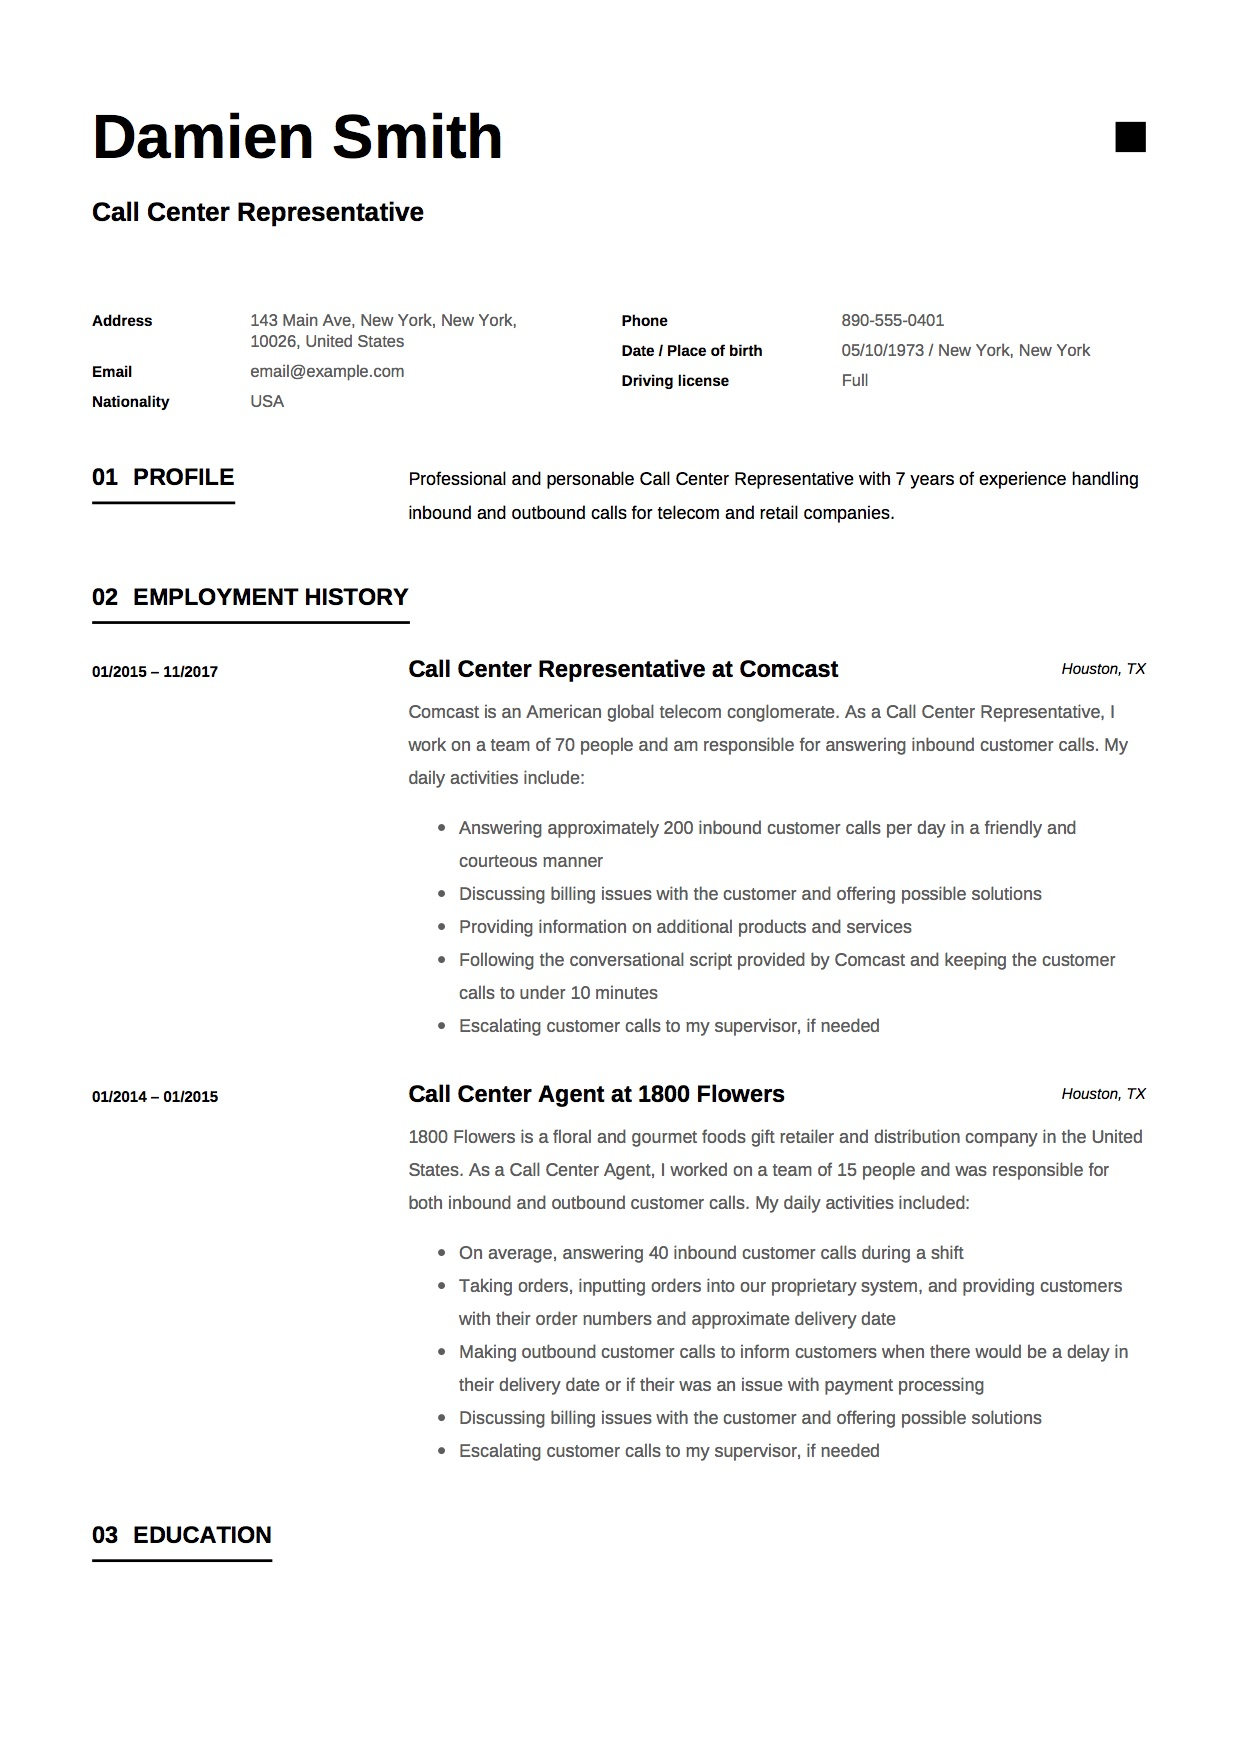 call center representative resume sample - Resume Samples Free Download